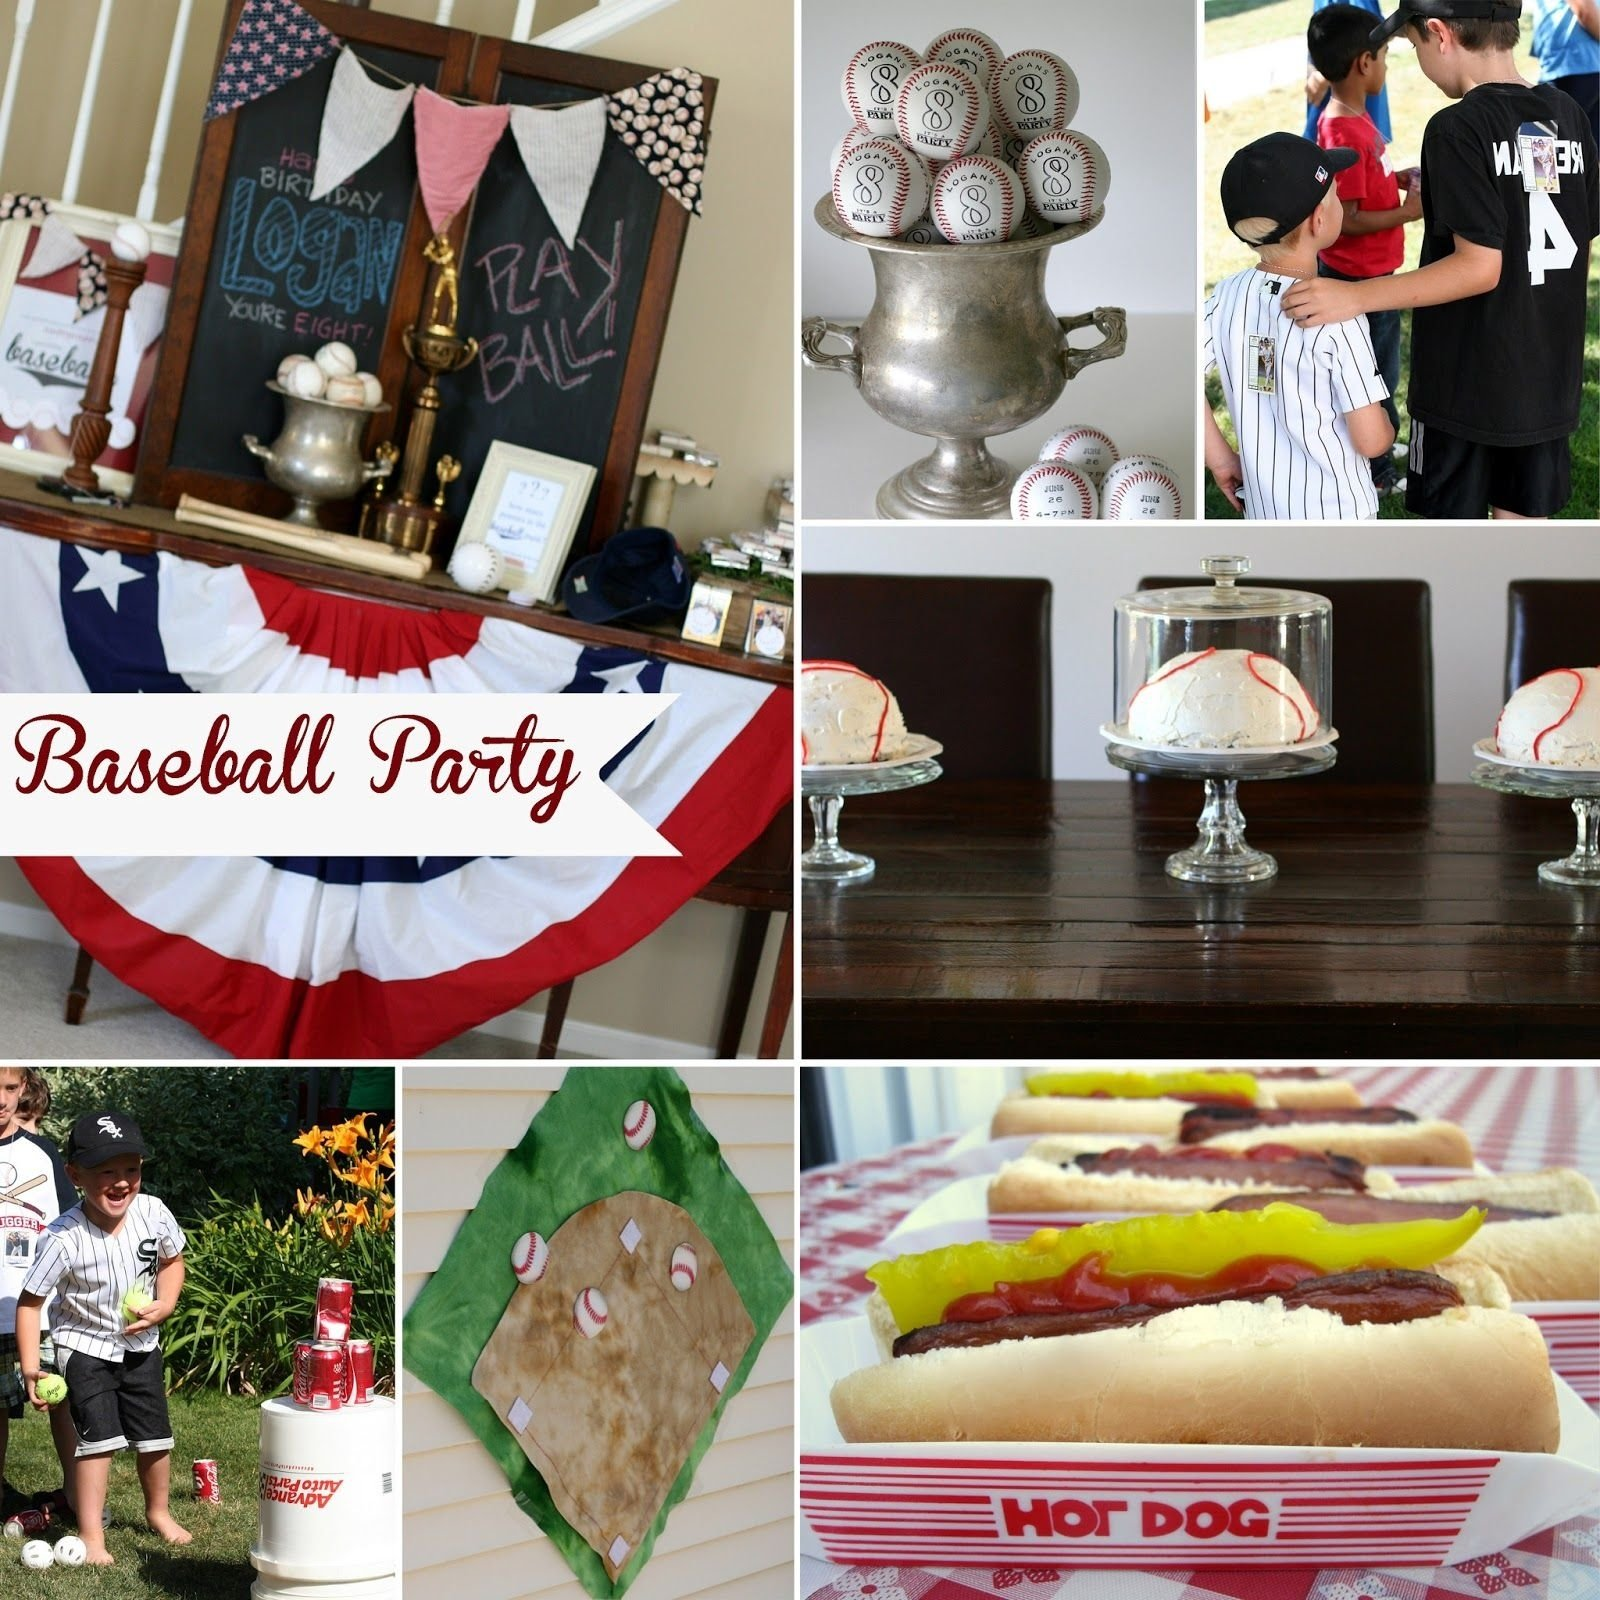 10 Stylish Birthday Party Ideas St. Louis baseball birthday party for 8 year old boys birthday party 2